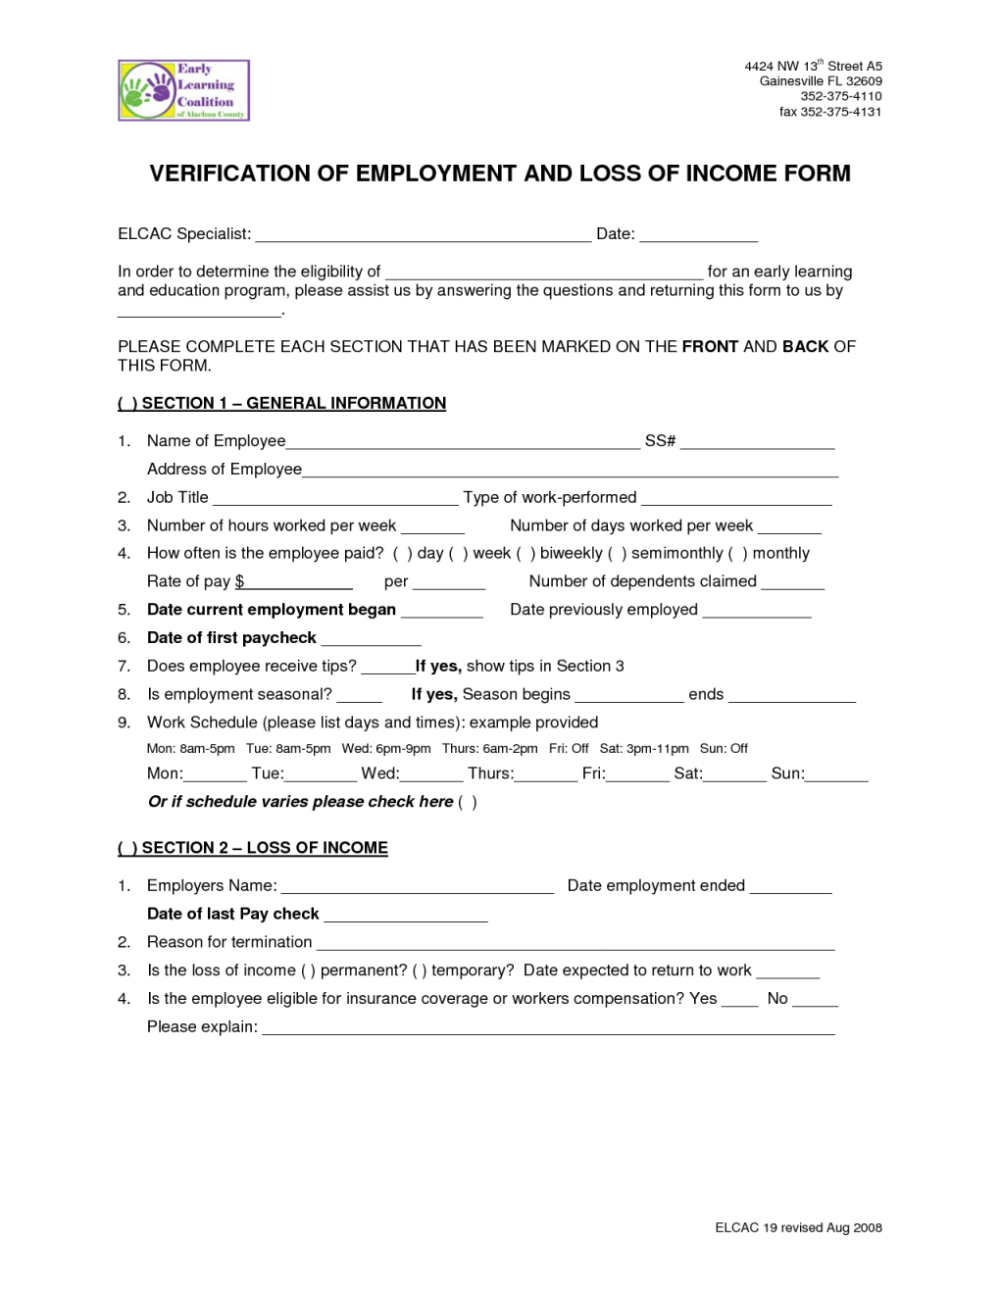 Loss Of Income Form Florida In Verification Of Employment Loss Of Income Form Income Employment Employment Form